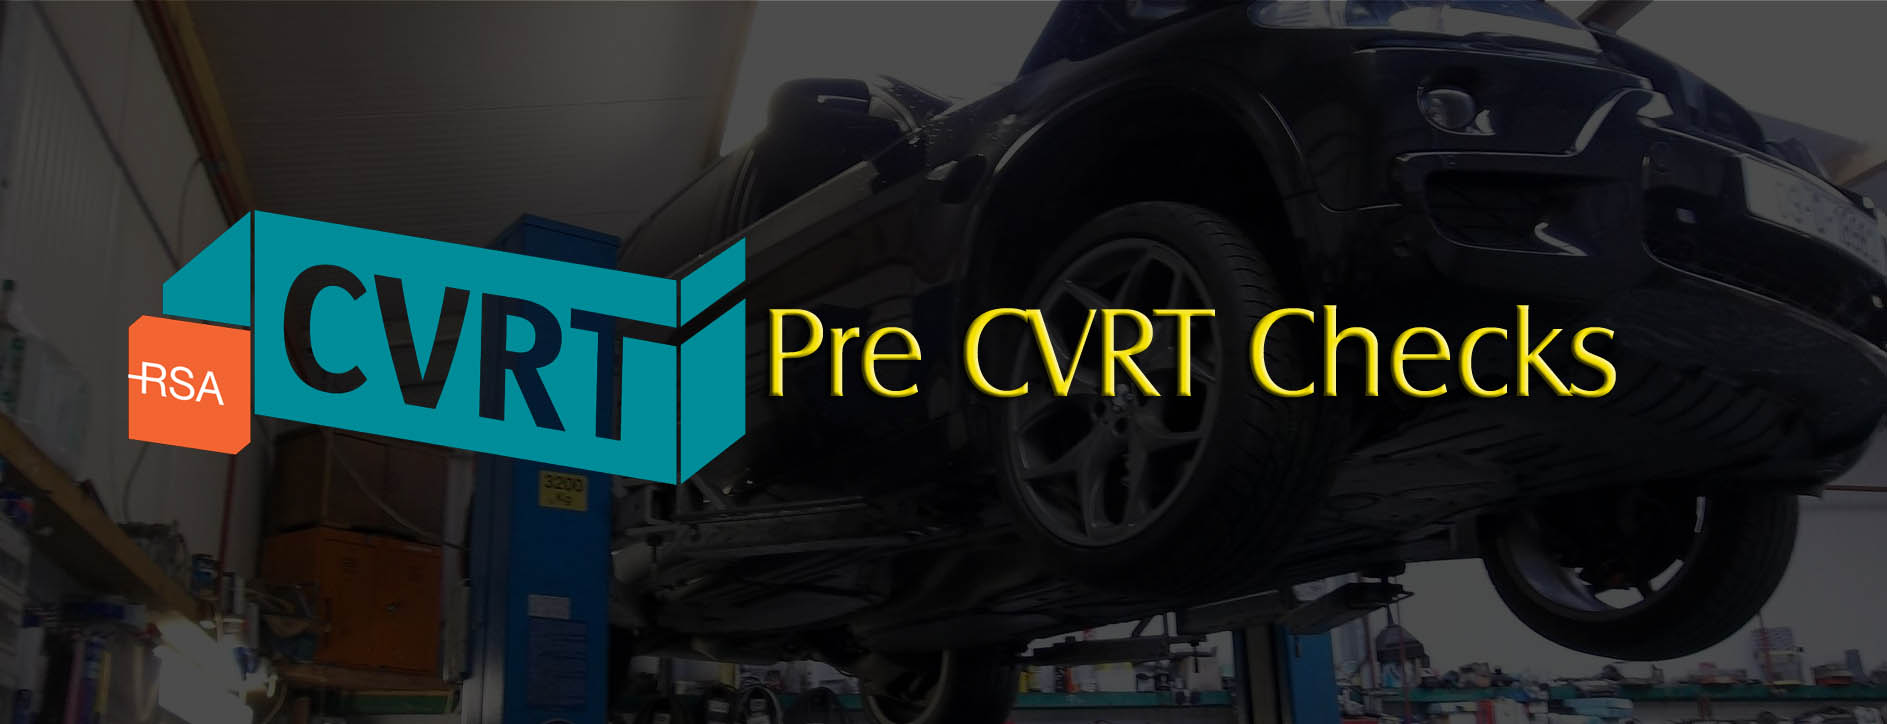 pre cvrt checks waterford header image